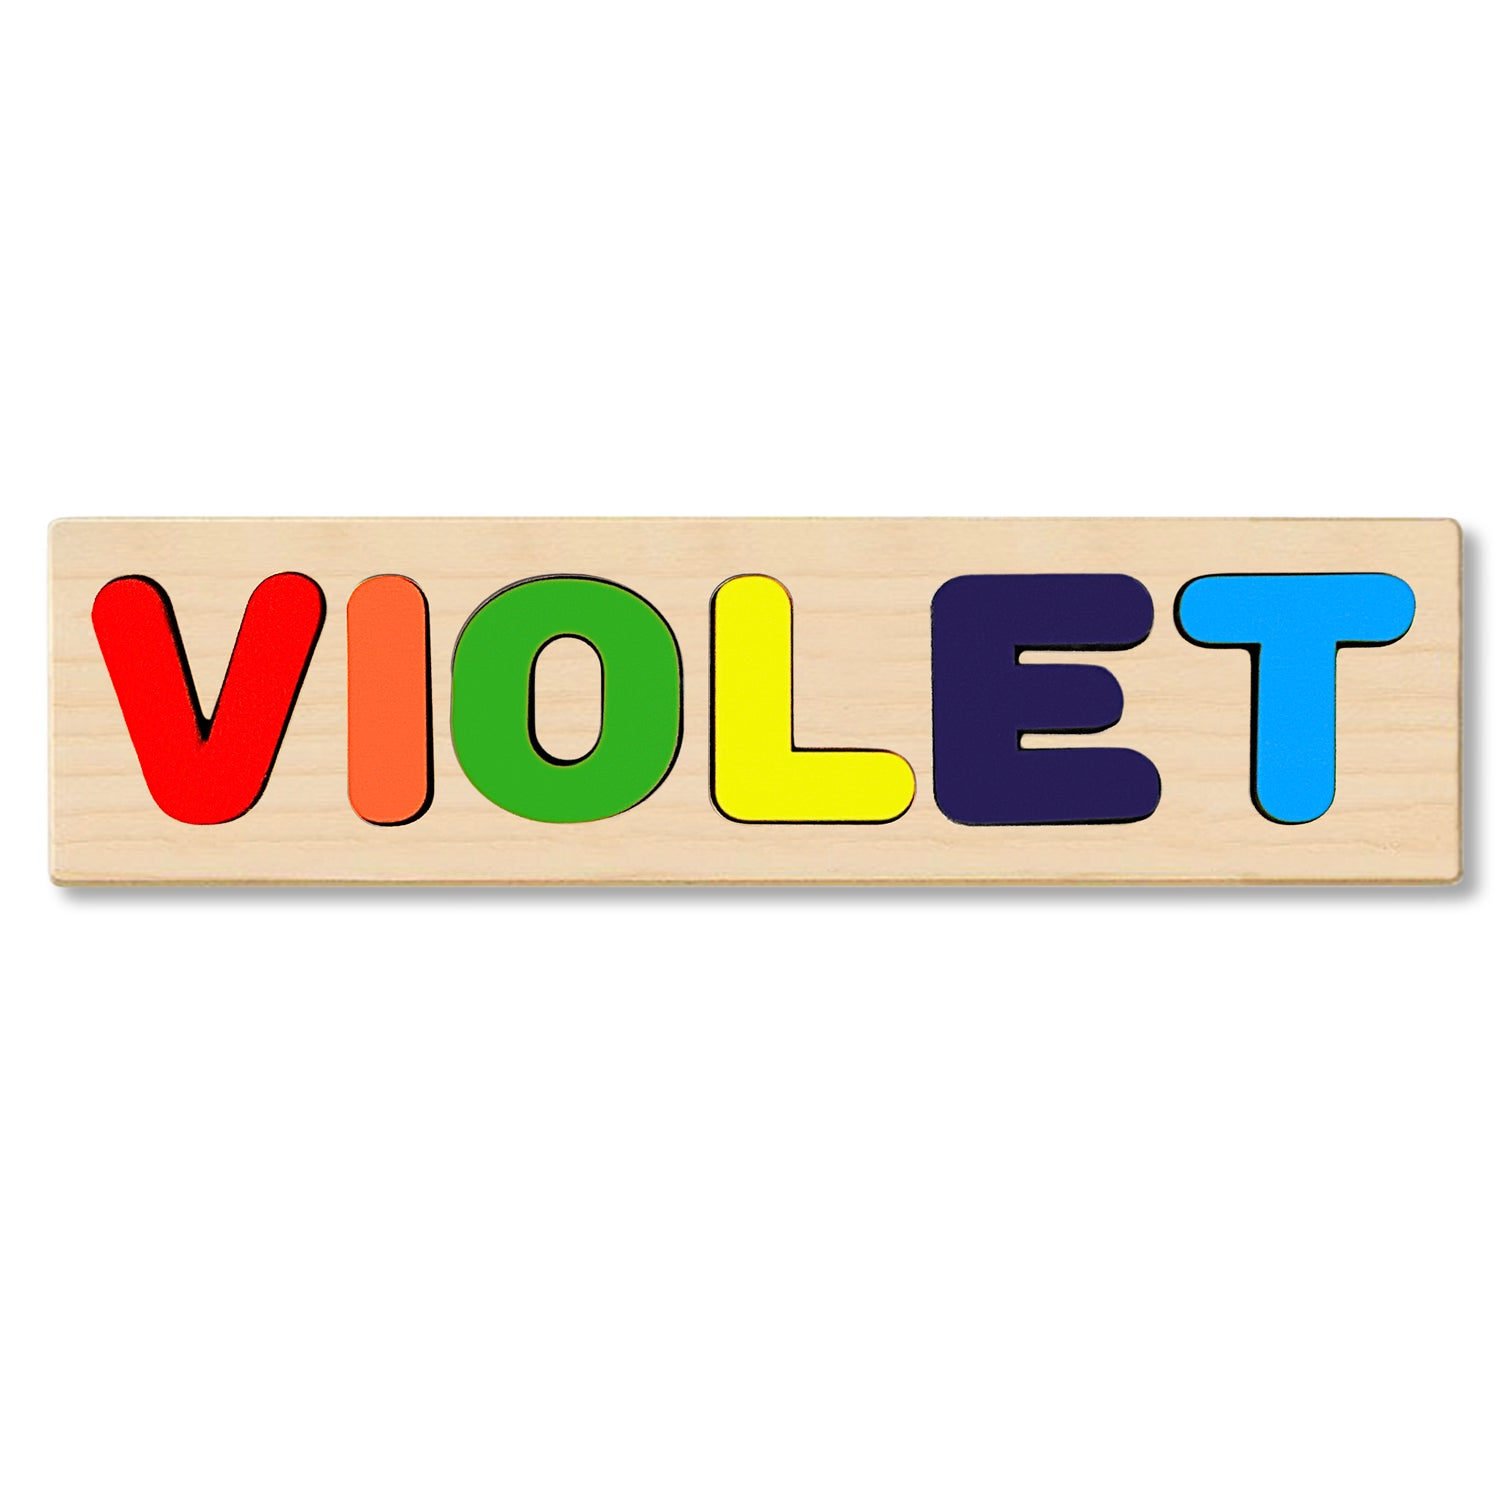 Wooden Personalized Name Puzzle - Any Name Or First & Last Name Choose up to 12 Letters No Extra Cost - VIOLET